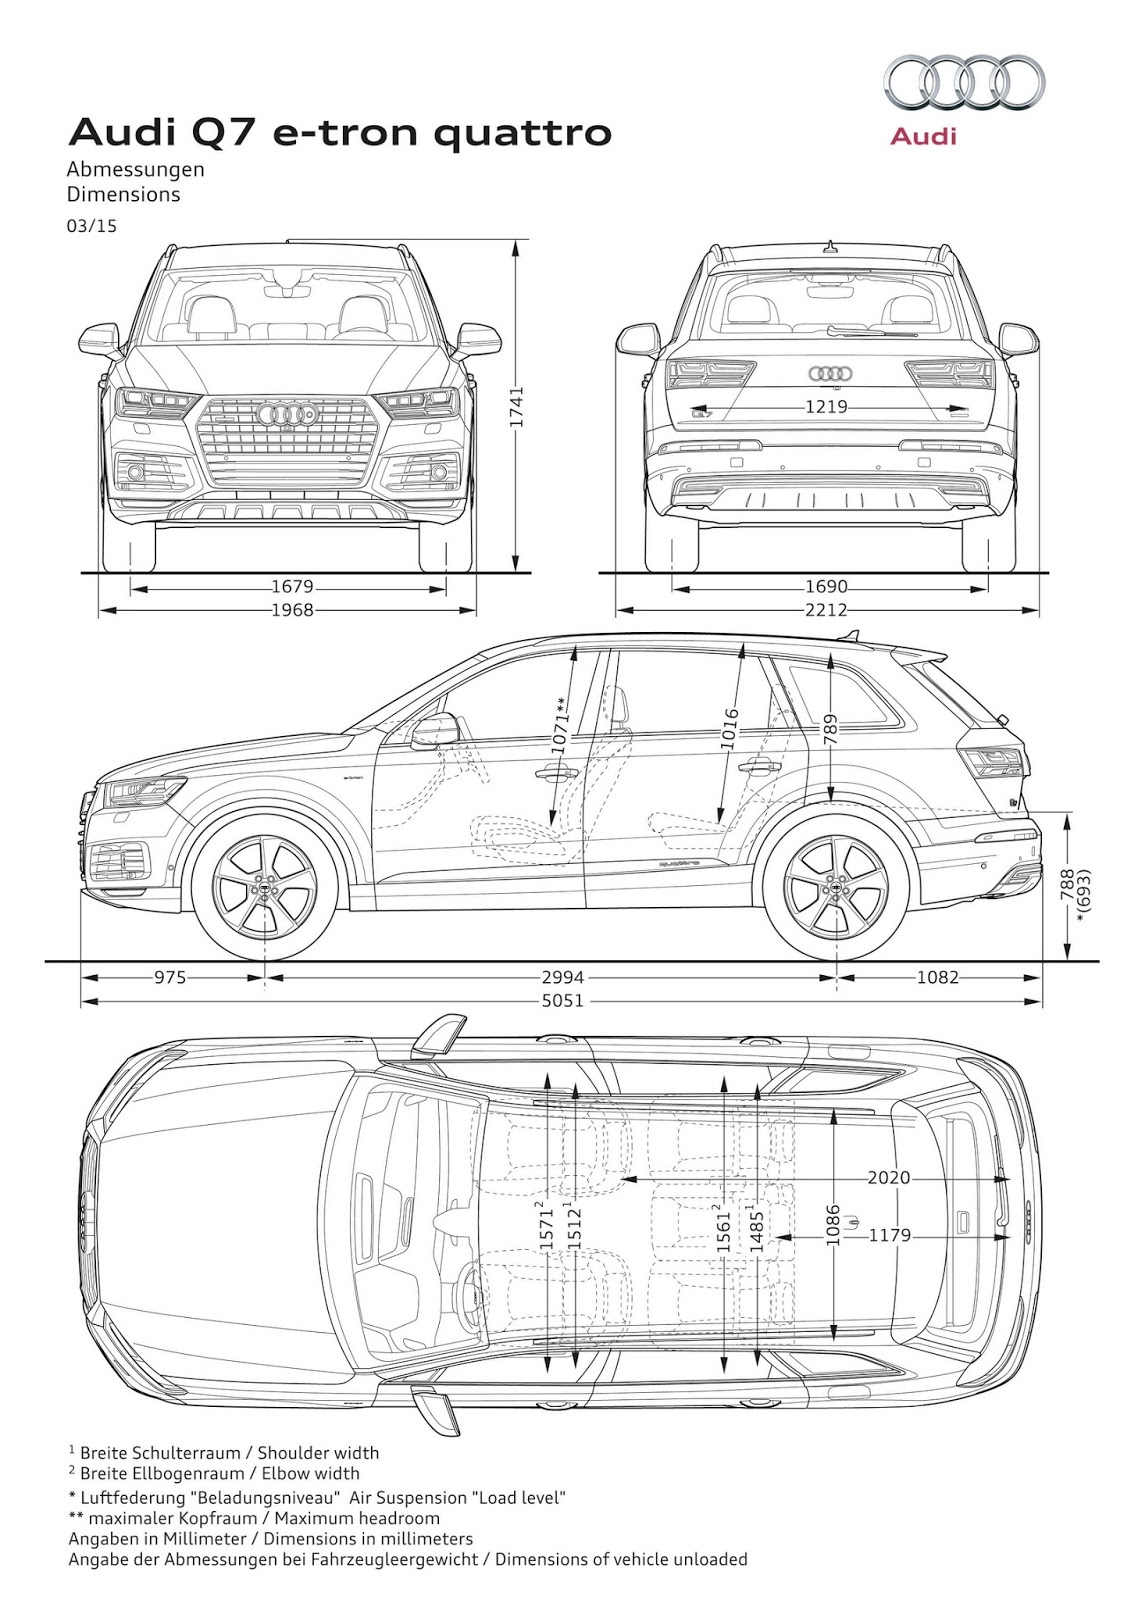 audi q7 diesel e tron quattro phev my nissan leaf forum will wait and see if the touareg version of this new platform will be about the same size as they already have planned a much larger tiguan this site shows